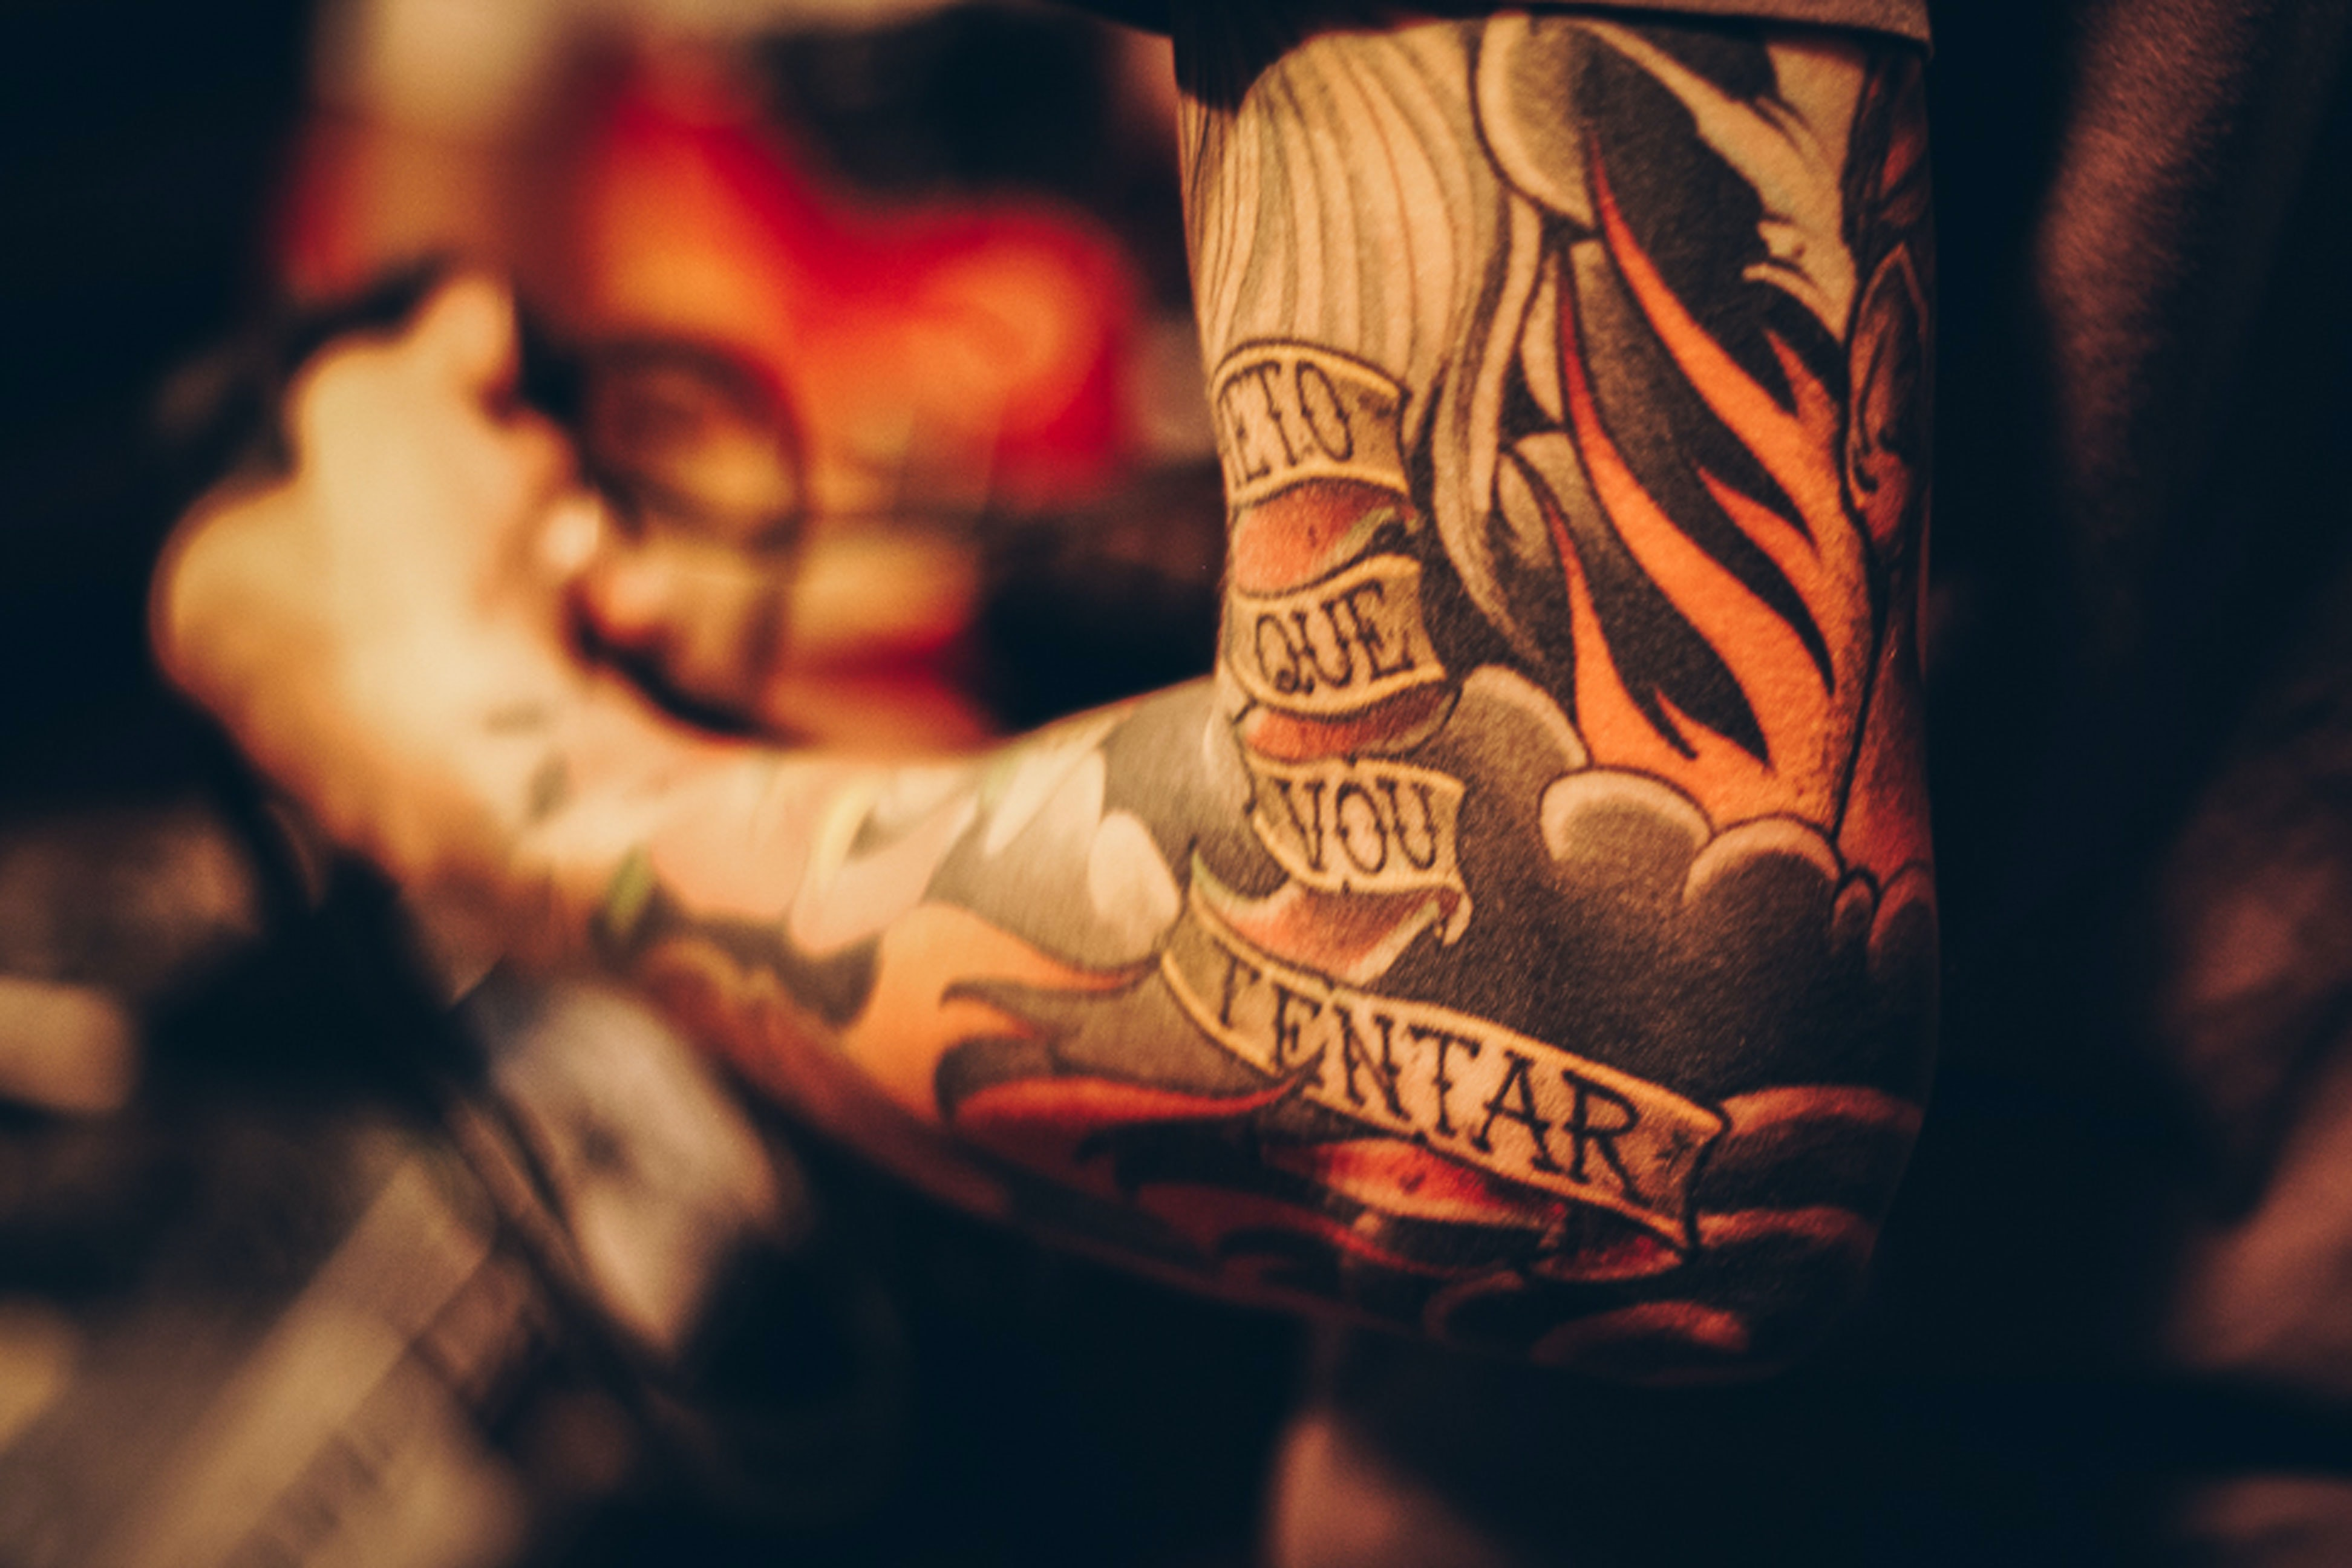 Close-up of a person's tattooed arm